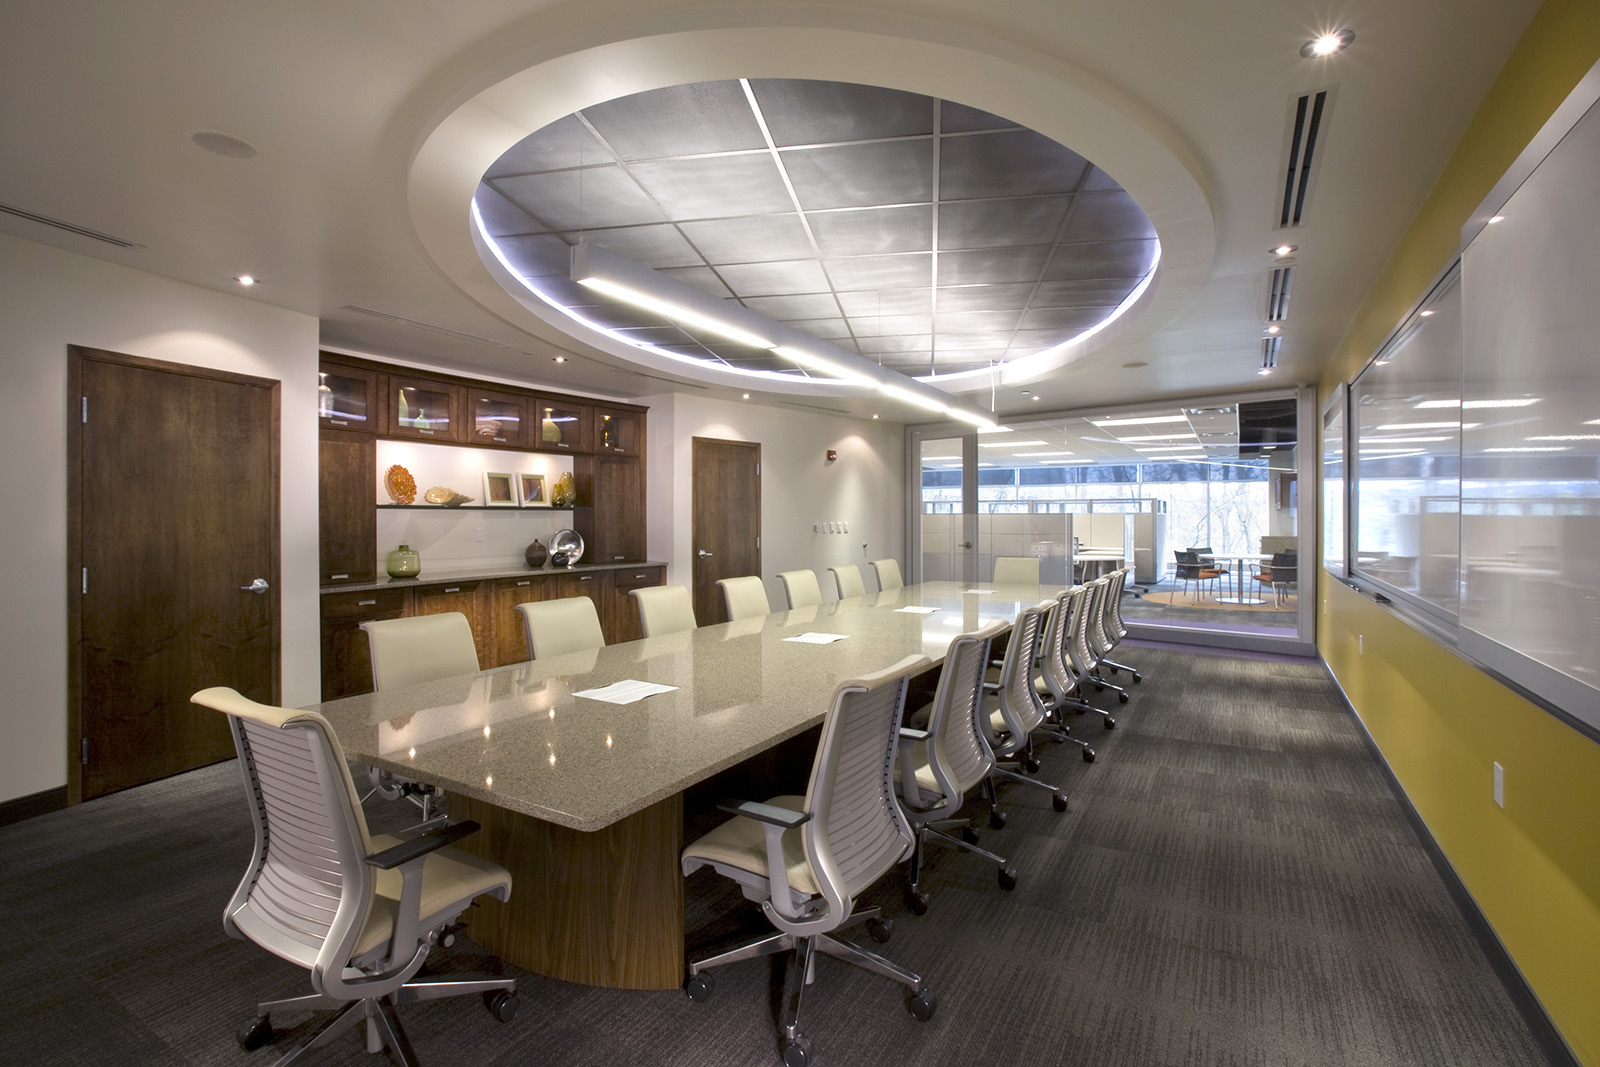 masco-cabinetry-conference-room